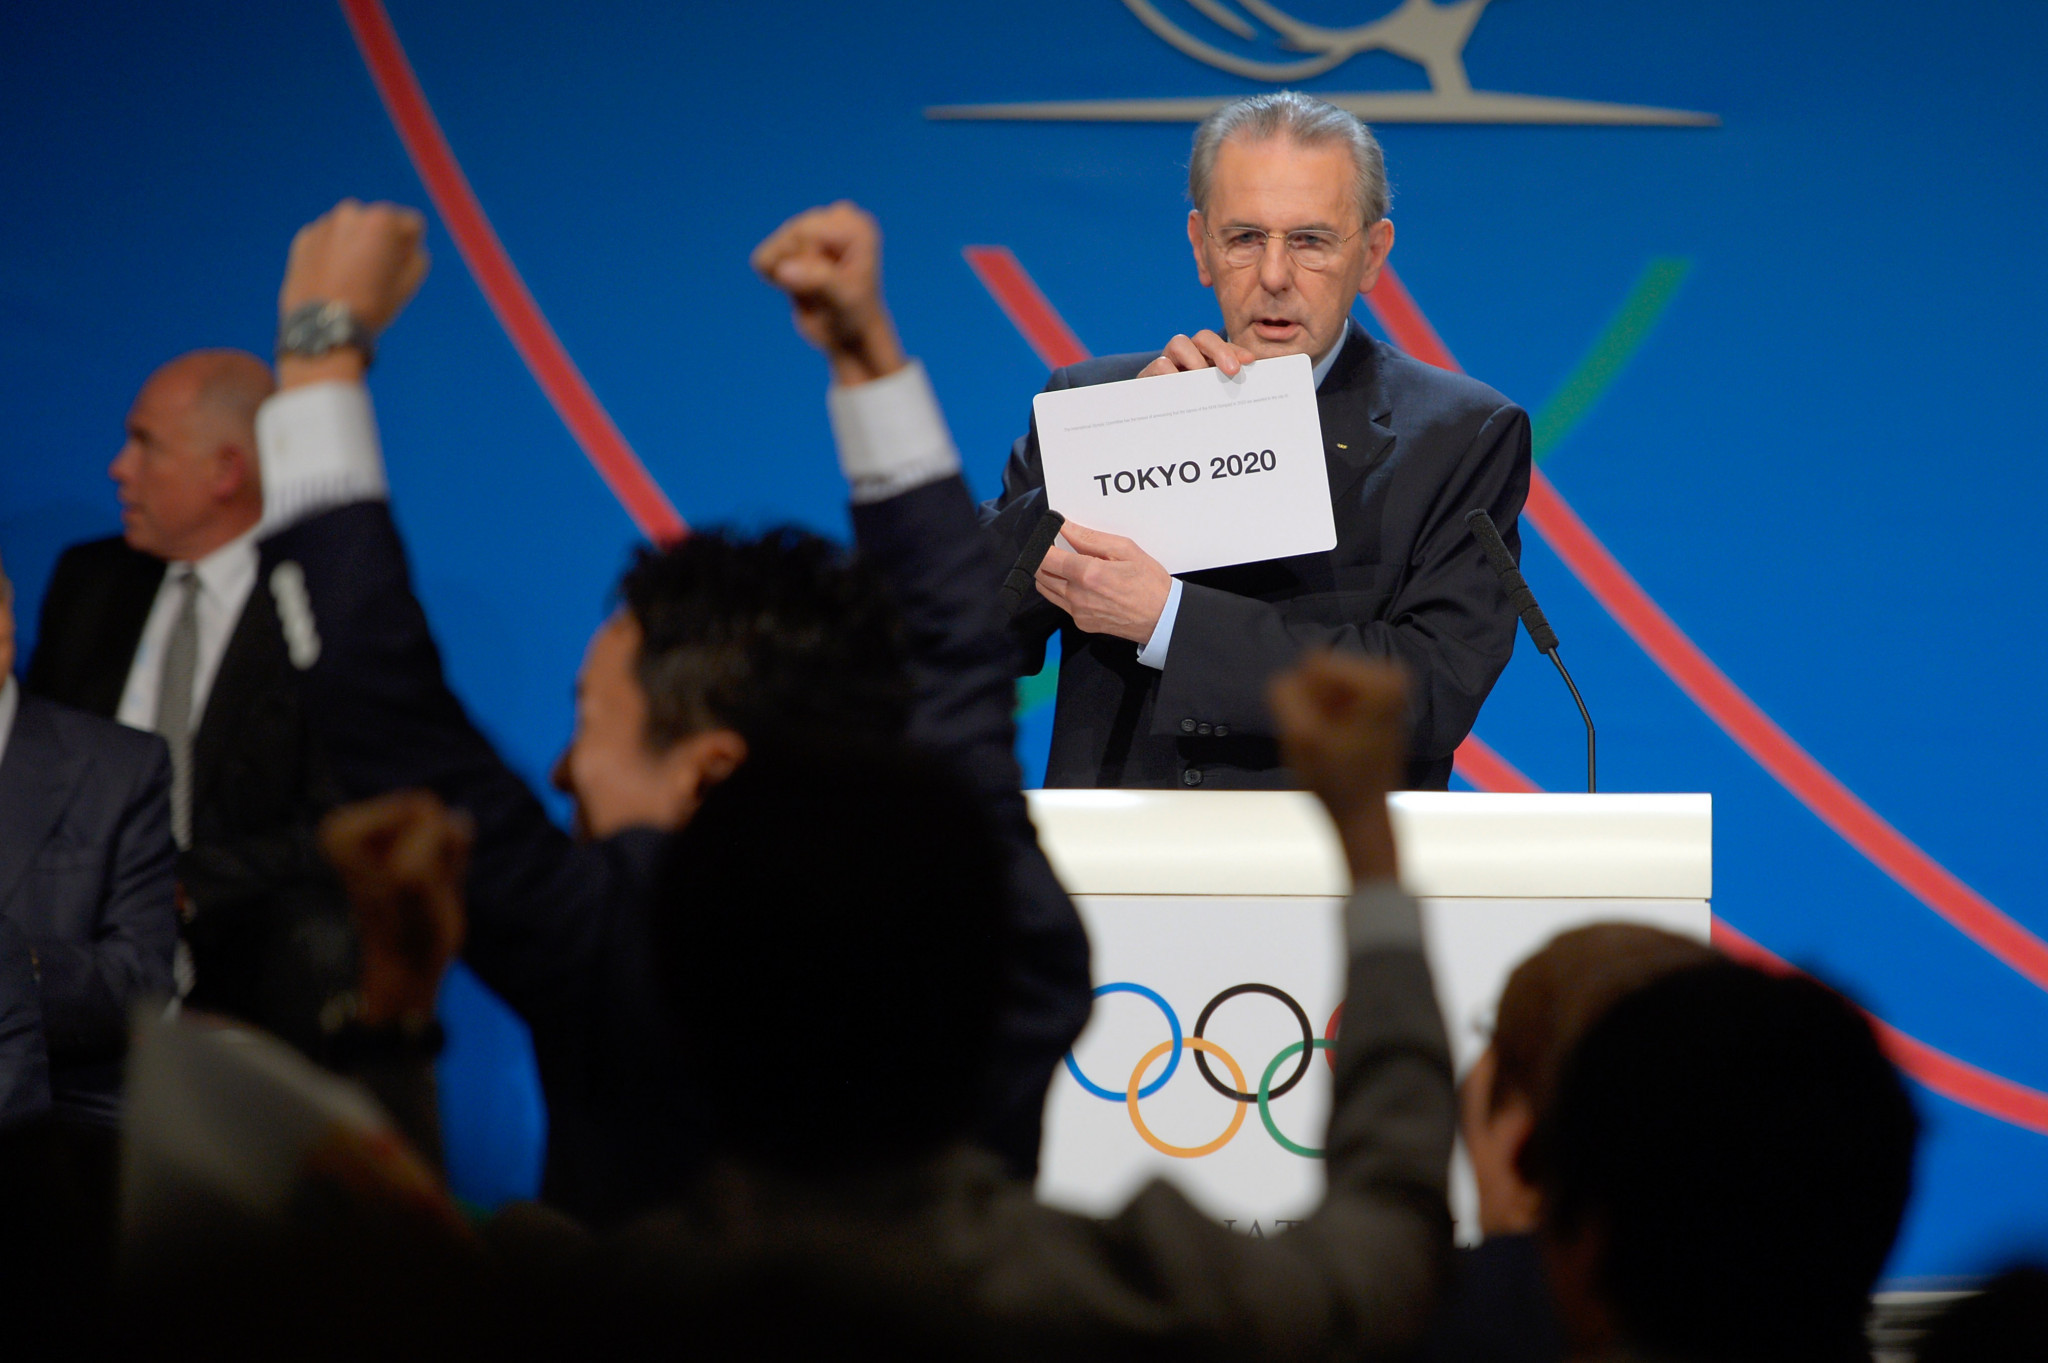 At the IOC Session in Argentina's capital Buenos Aires in 2013, Tokyo beat Istanbul by 60 votes to 36 to secure the rights to the 2020 Games ©Getty Images